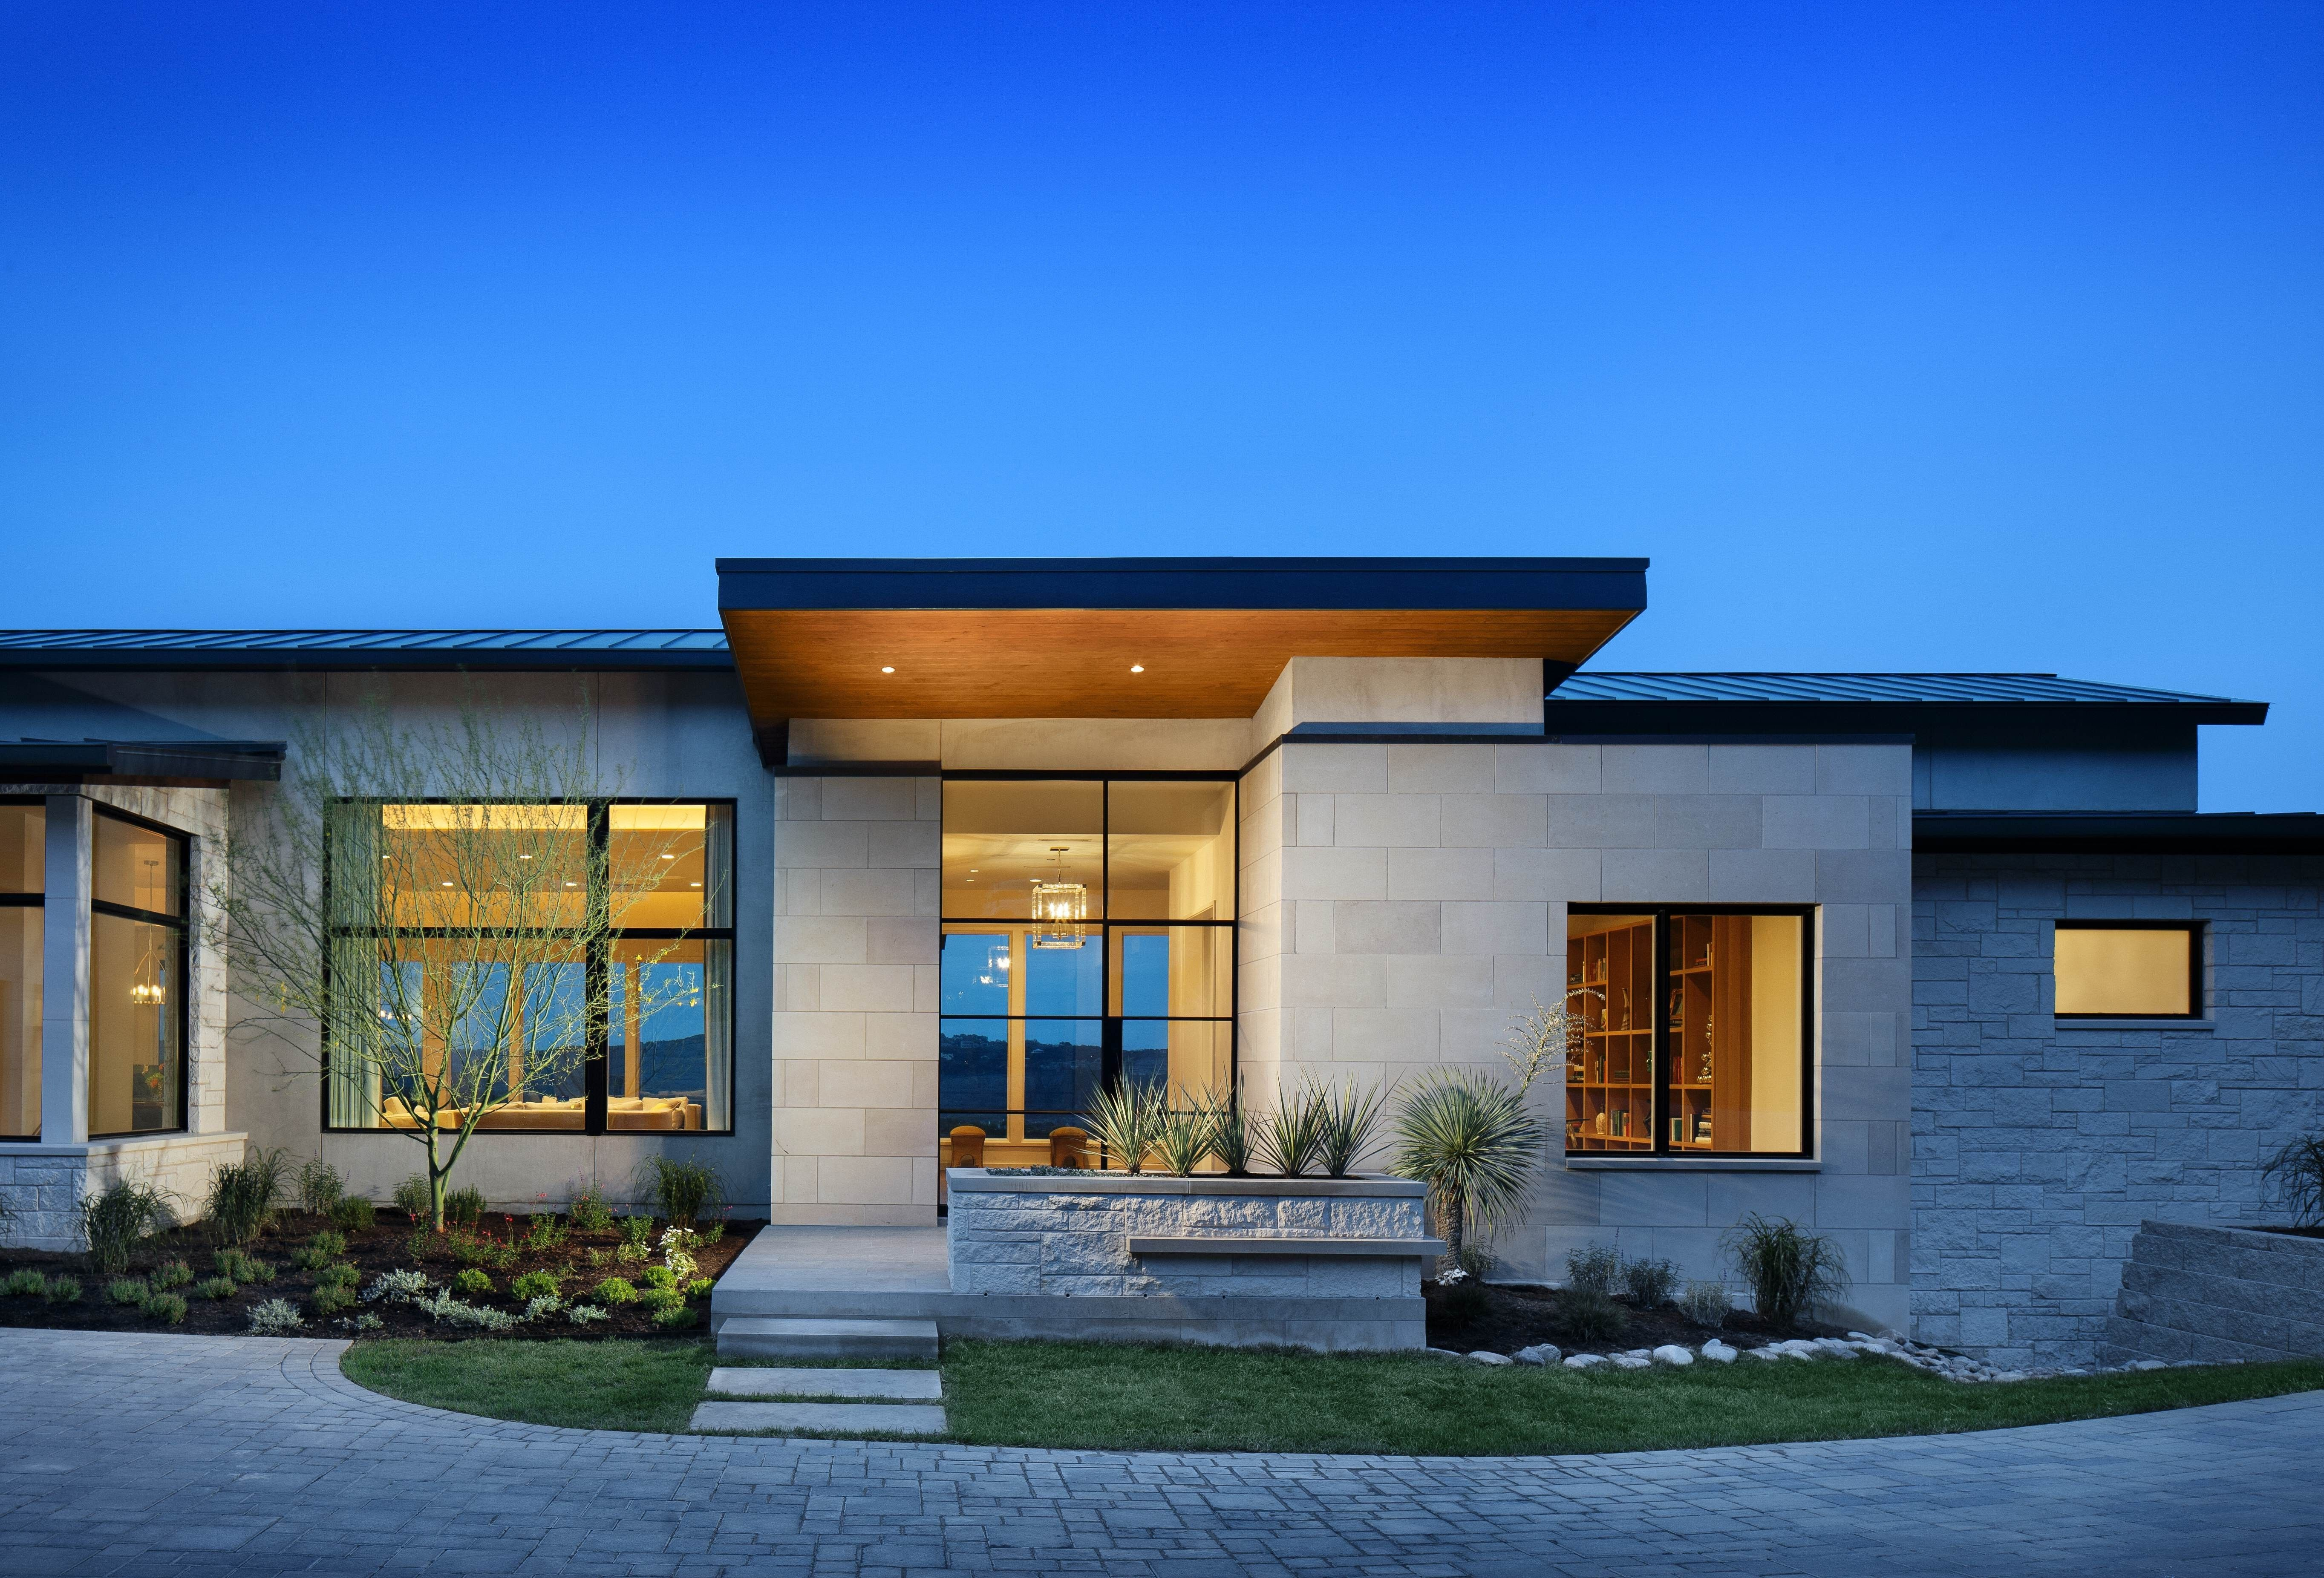 Modern Luxury Single Story House Plans Home Design Contemporary House Plans Flat Roof House Designs Facade House